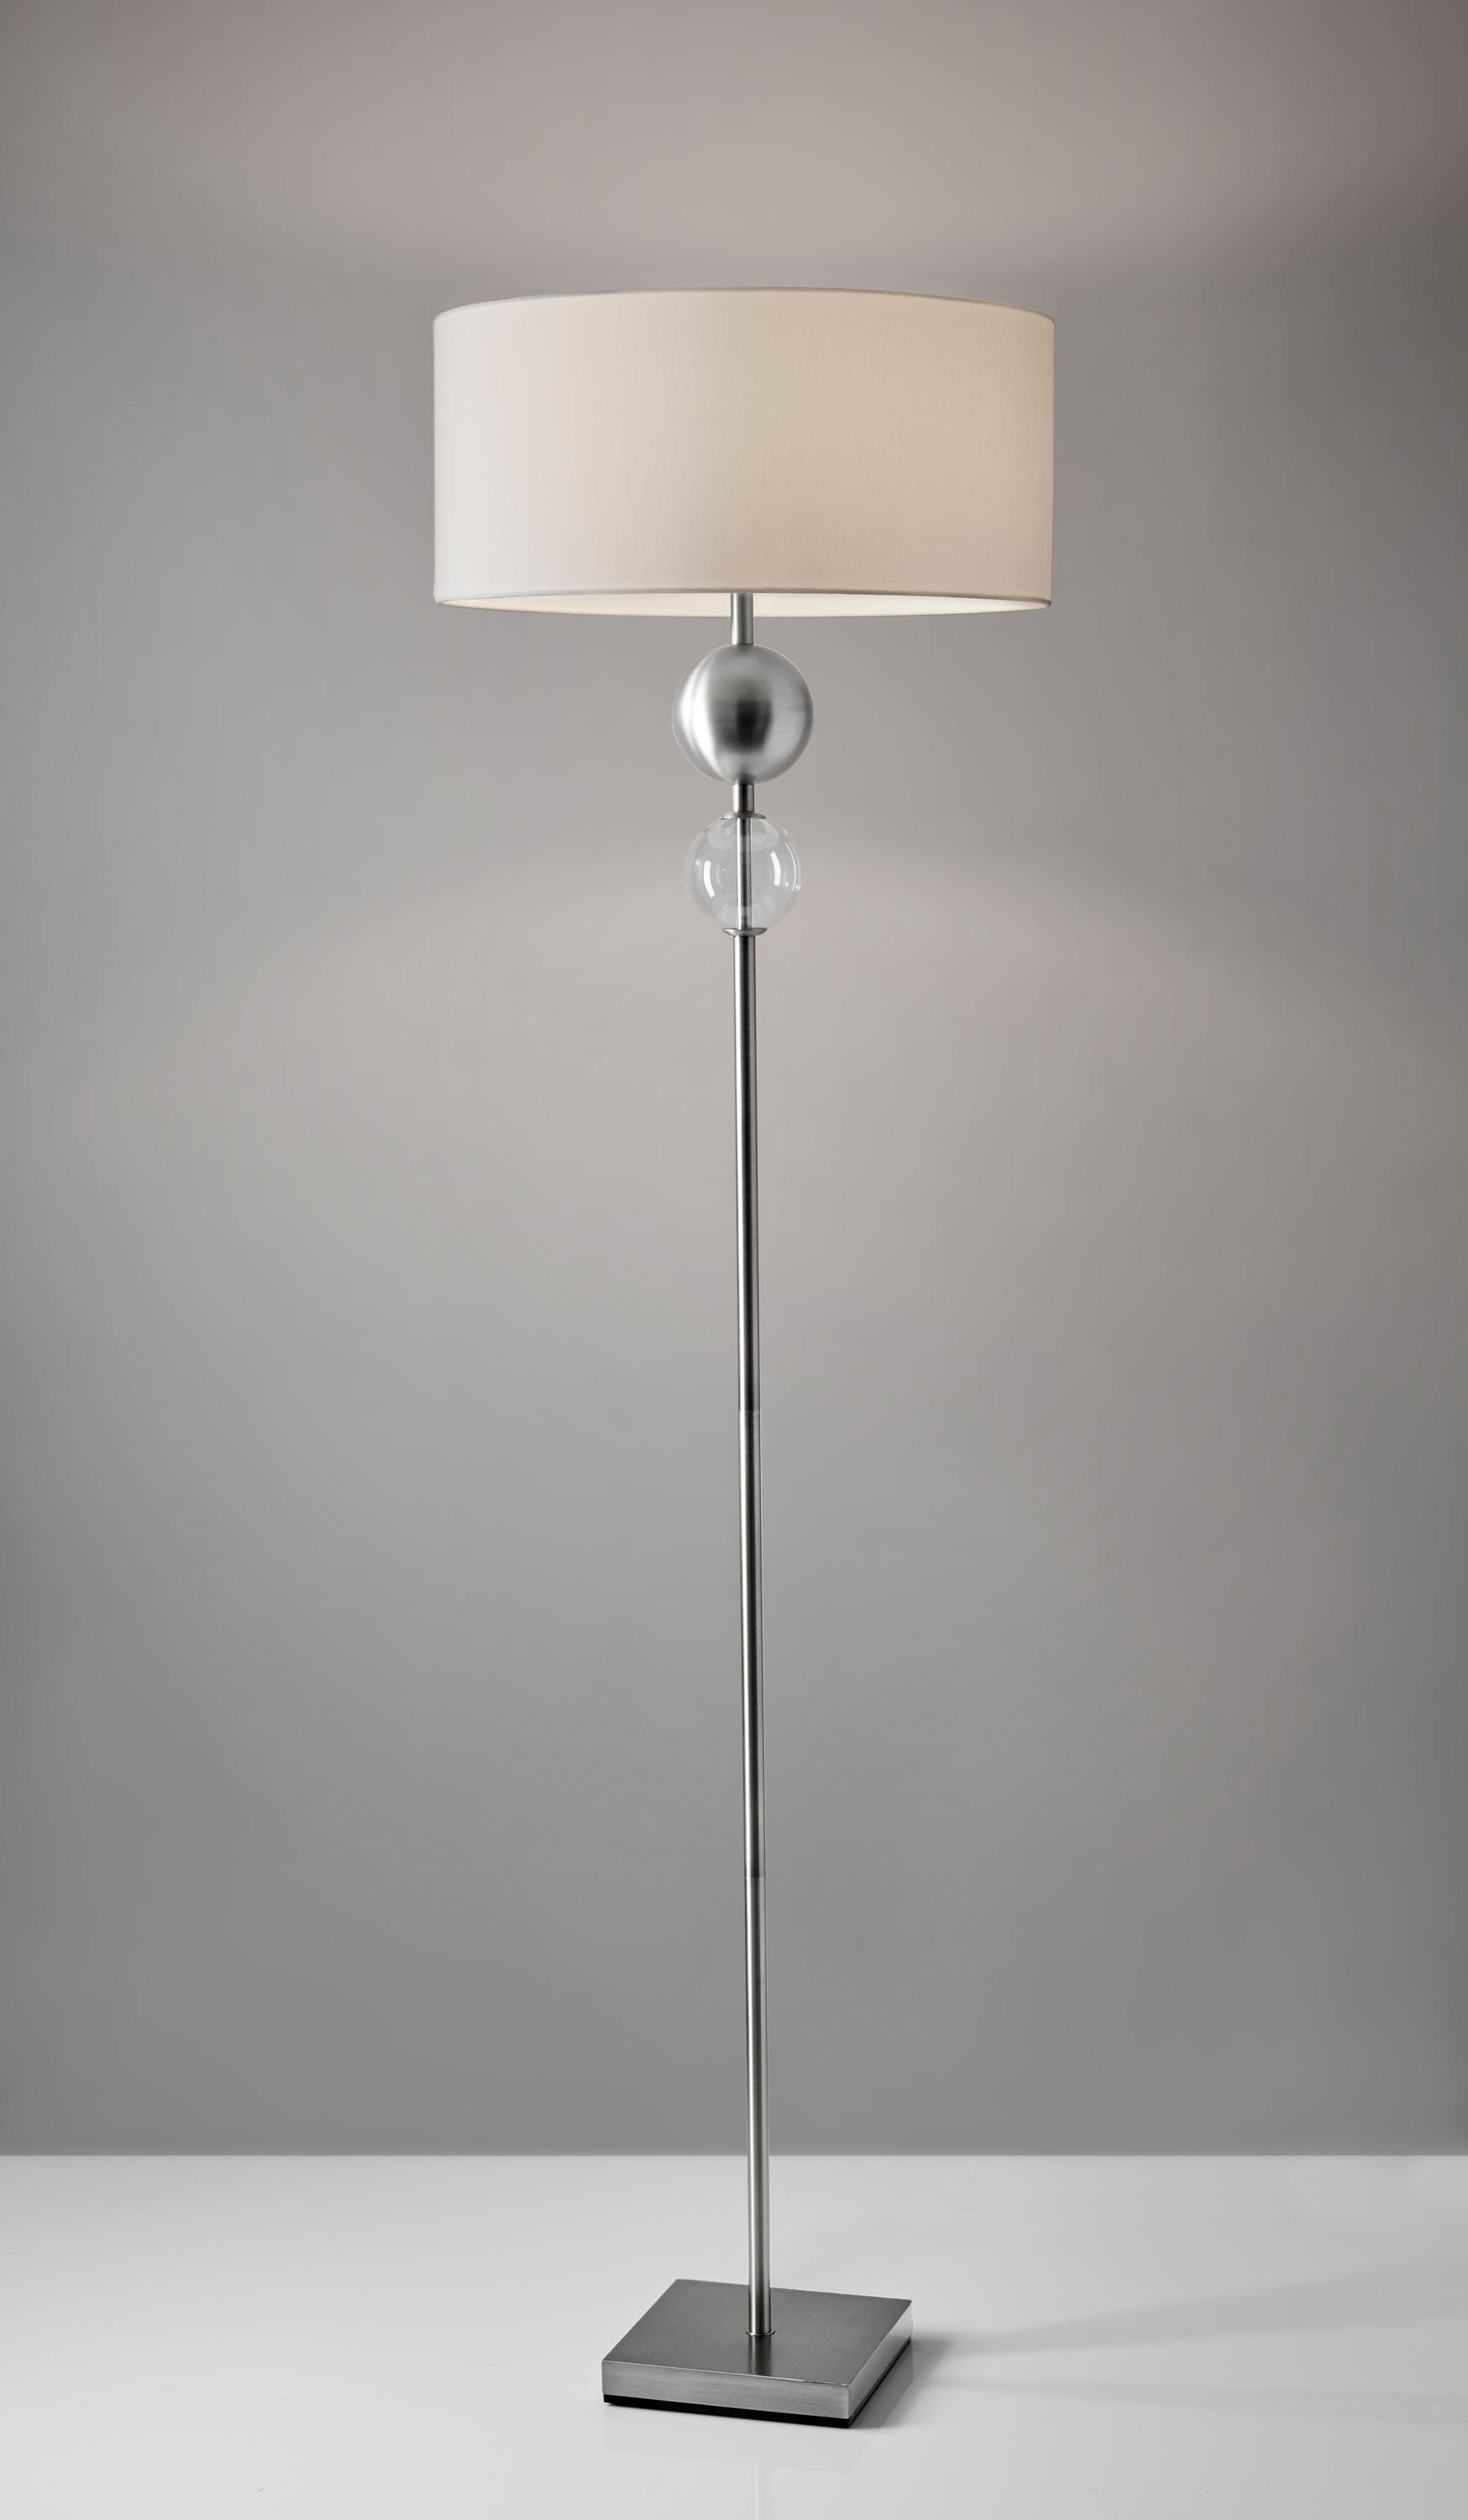 Ambient Floor Lamp Chloe Floor Lamp Free Standing Lights From Ads360